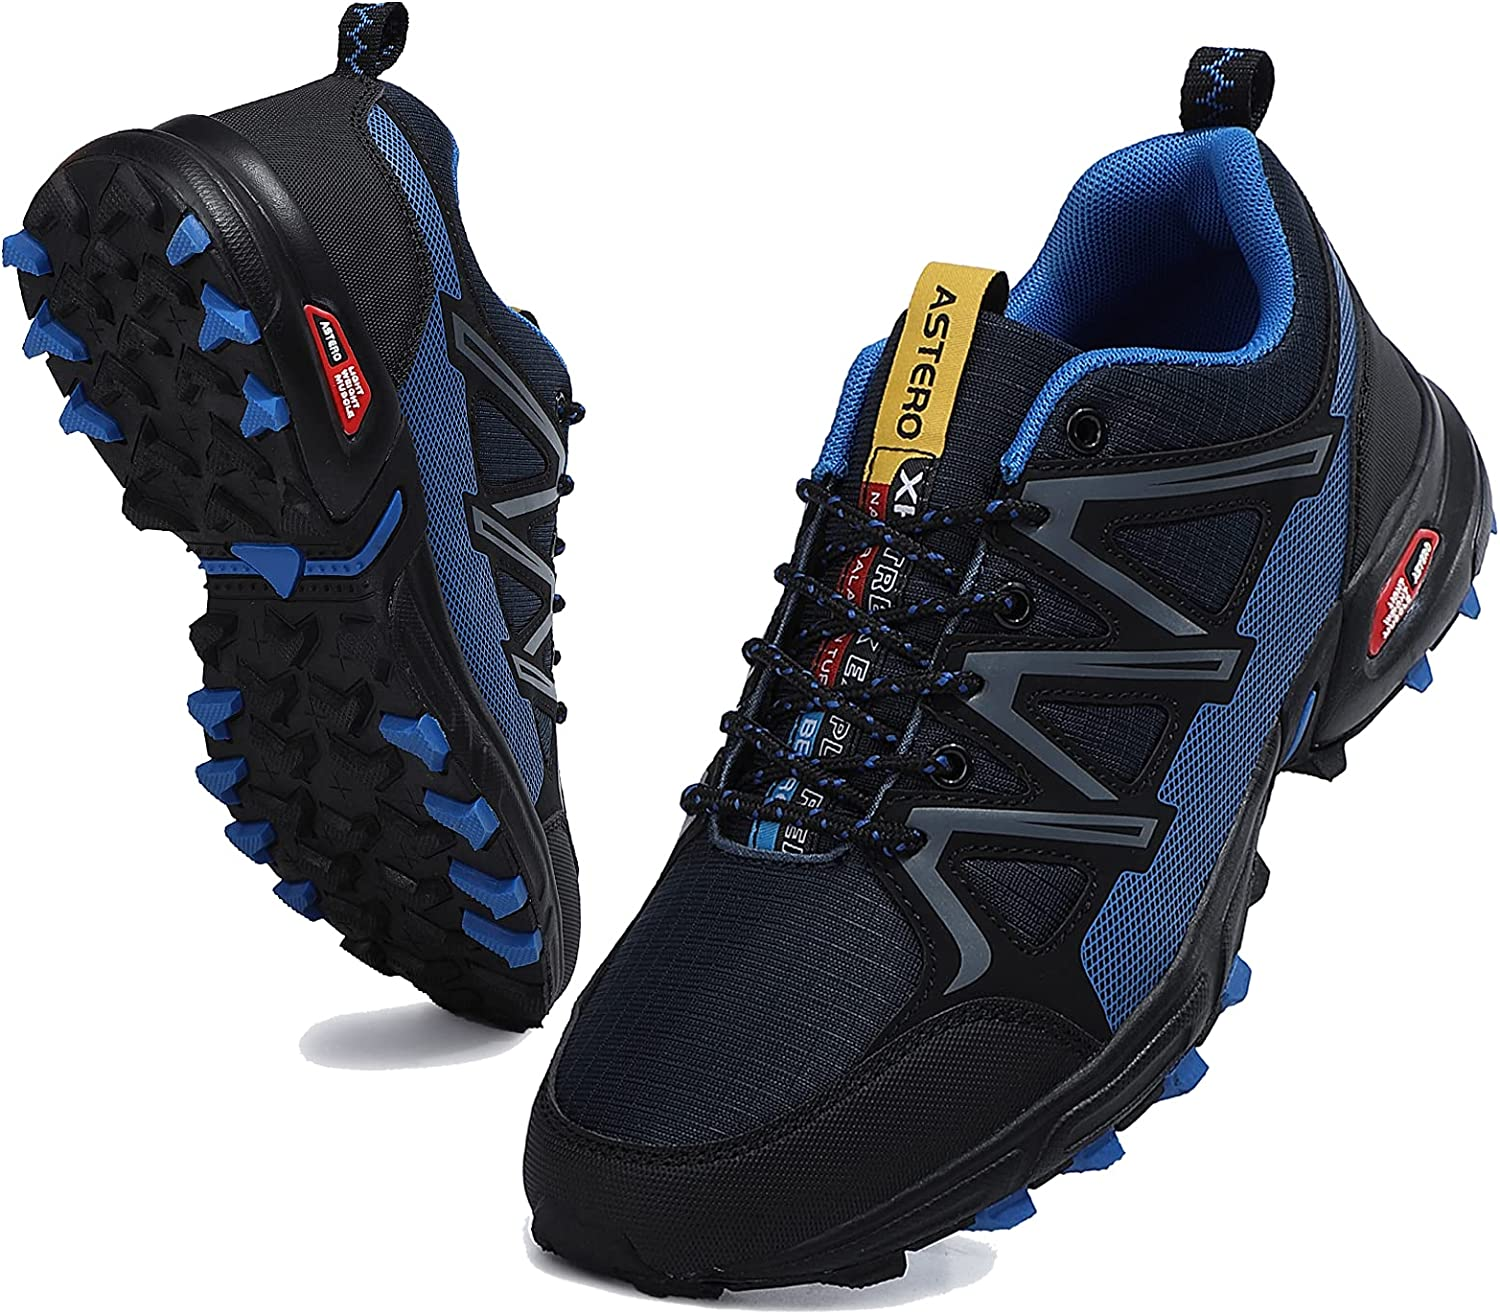 AX BOXING Men's favorite Trail Running Anti-Skid Super popular specialty store Shoes Walking Athl